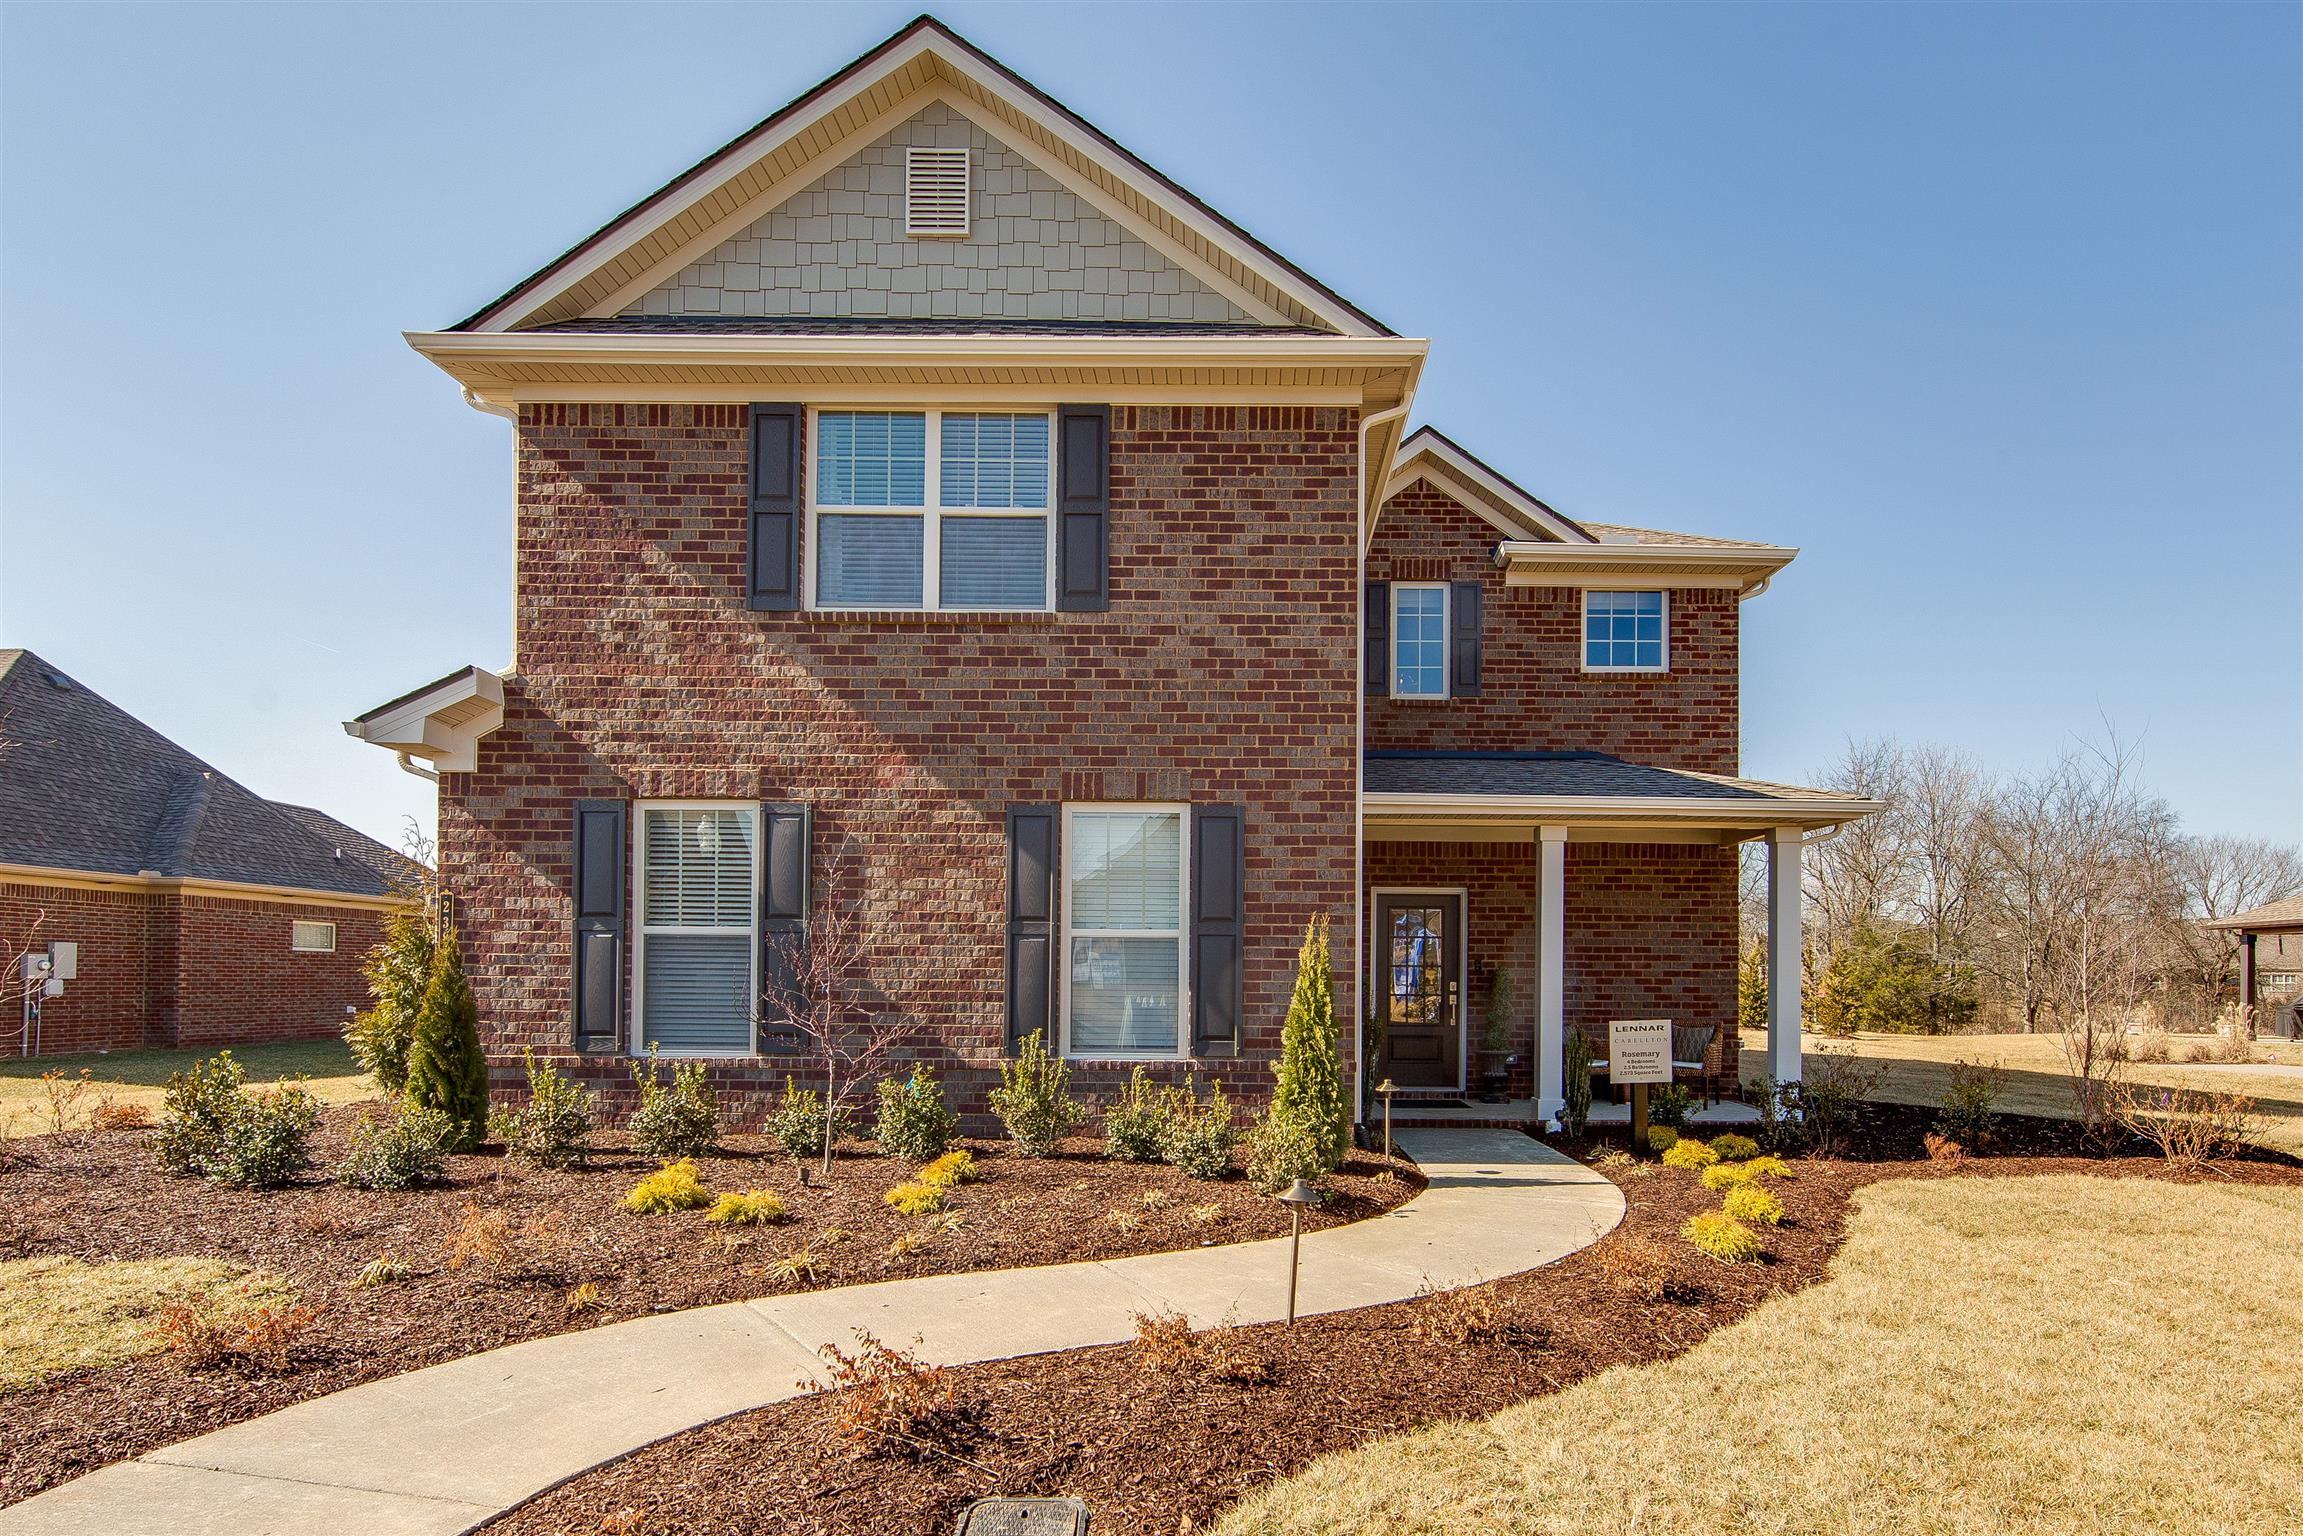 416 Cloverbrook Way, Gallatin in Sumner County County, TN 37066 Home for Sale